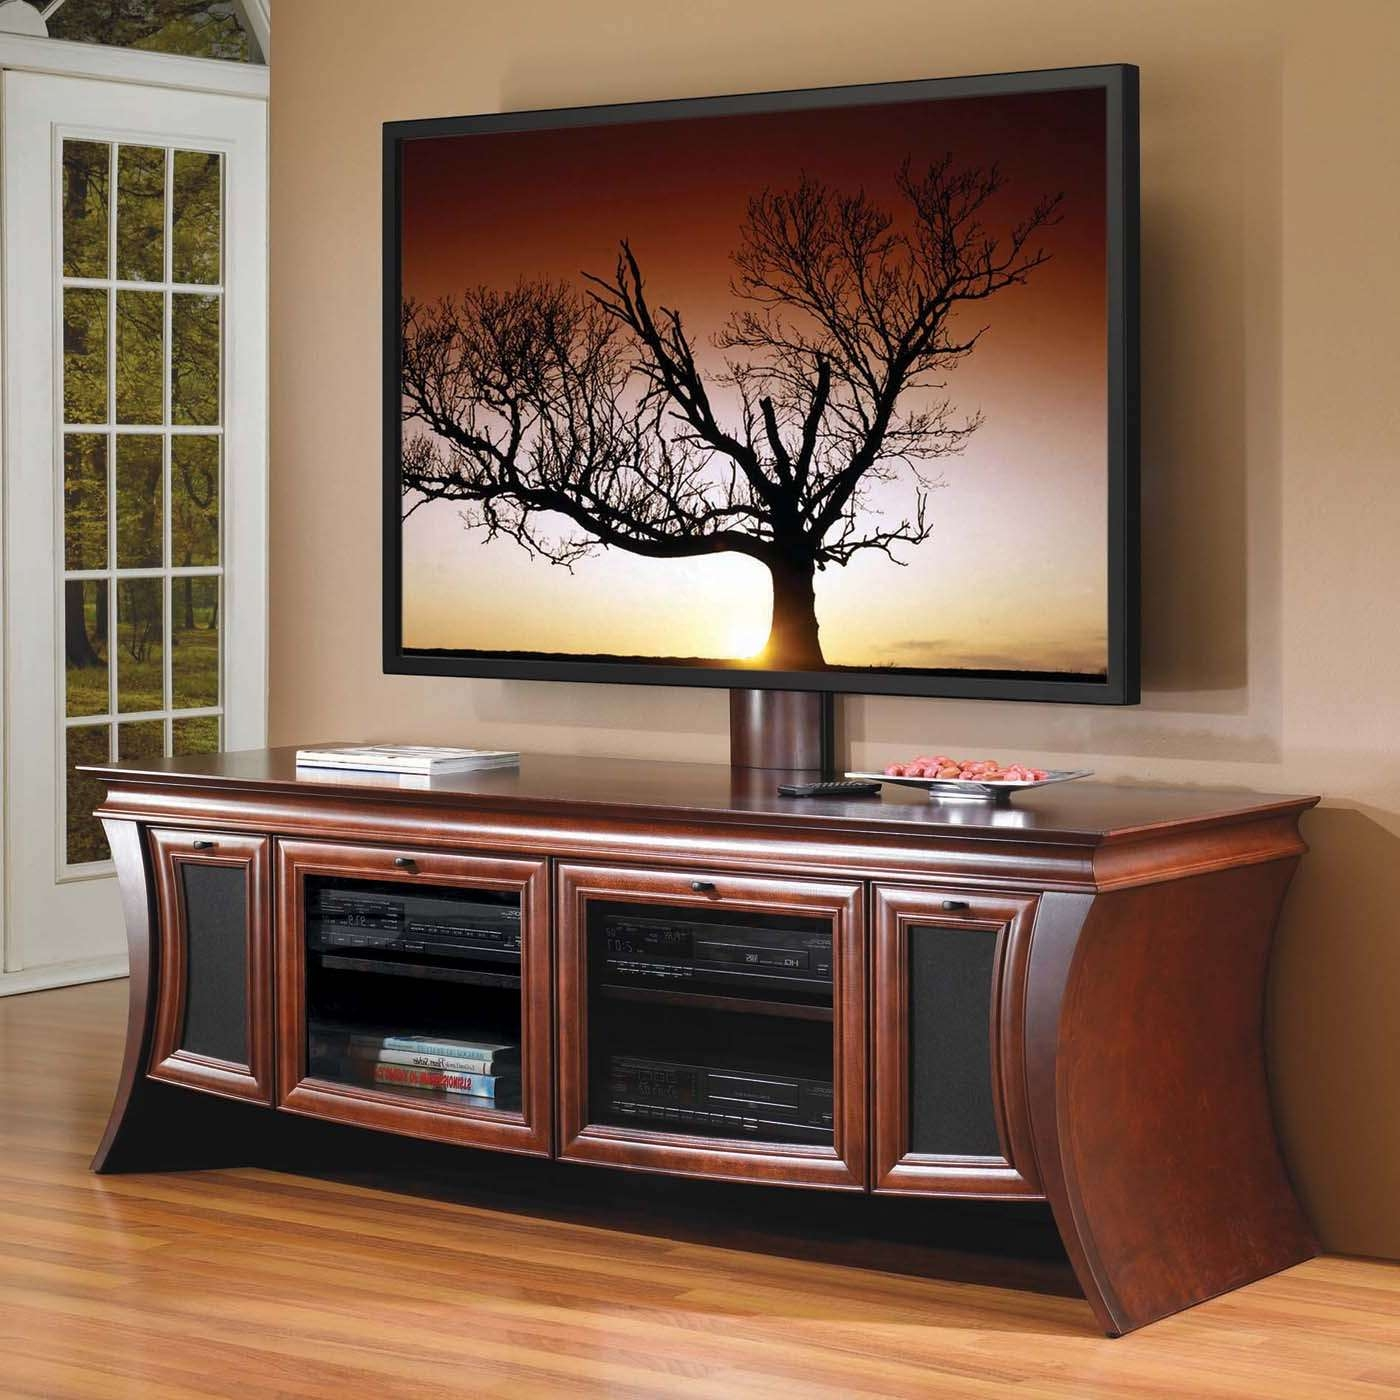 Furnitures Media Stands For Flat Screen Tvs Furniture The Best Throughout Corner Tv Cabinets For Flat Screens With Doors (View 10 of 20)